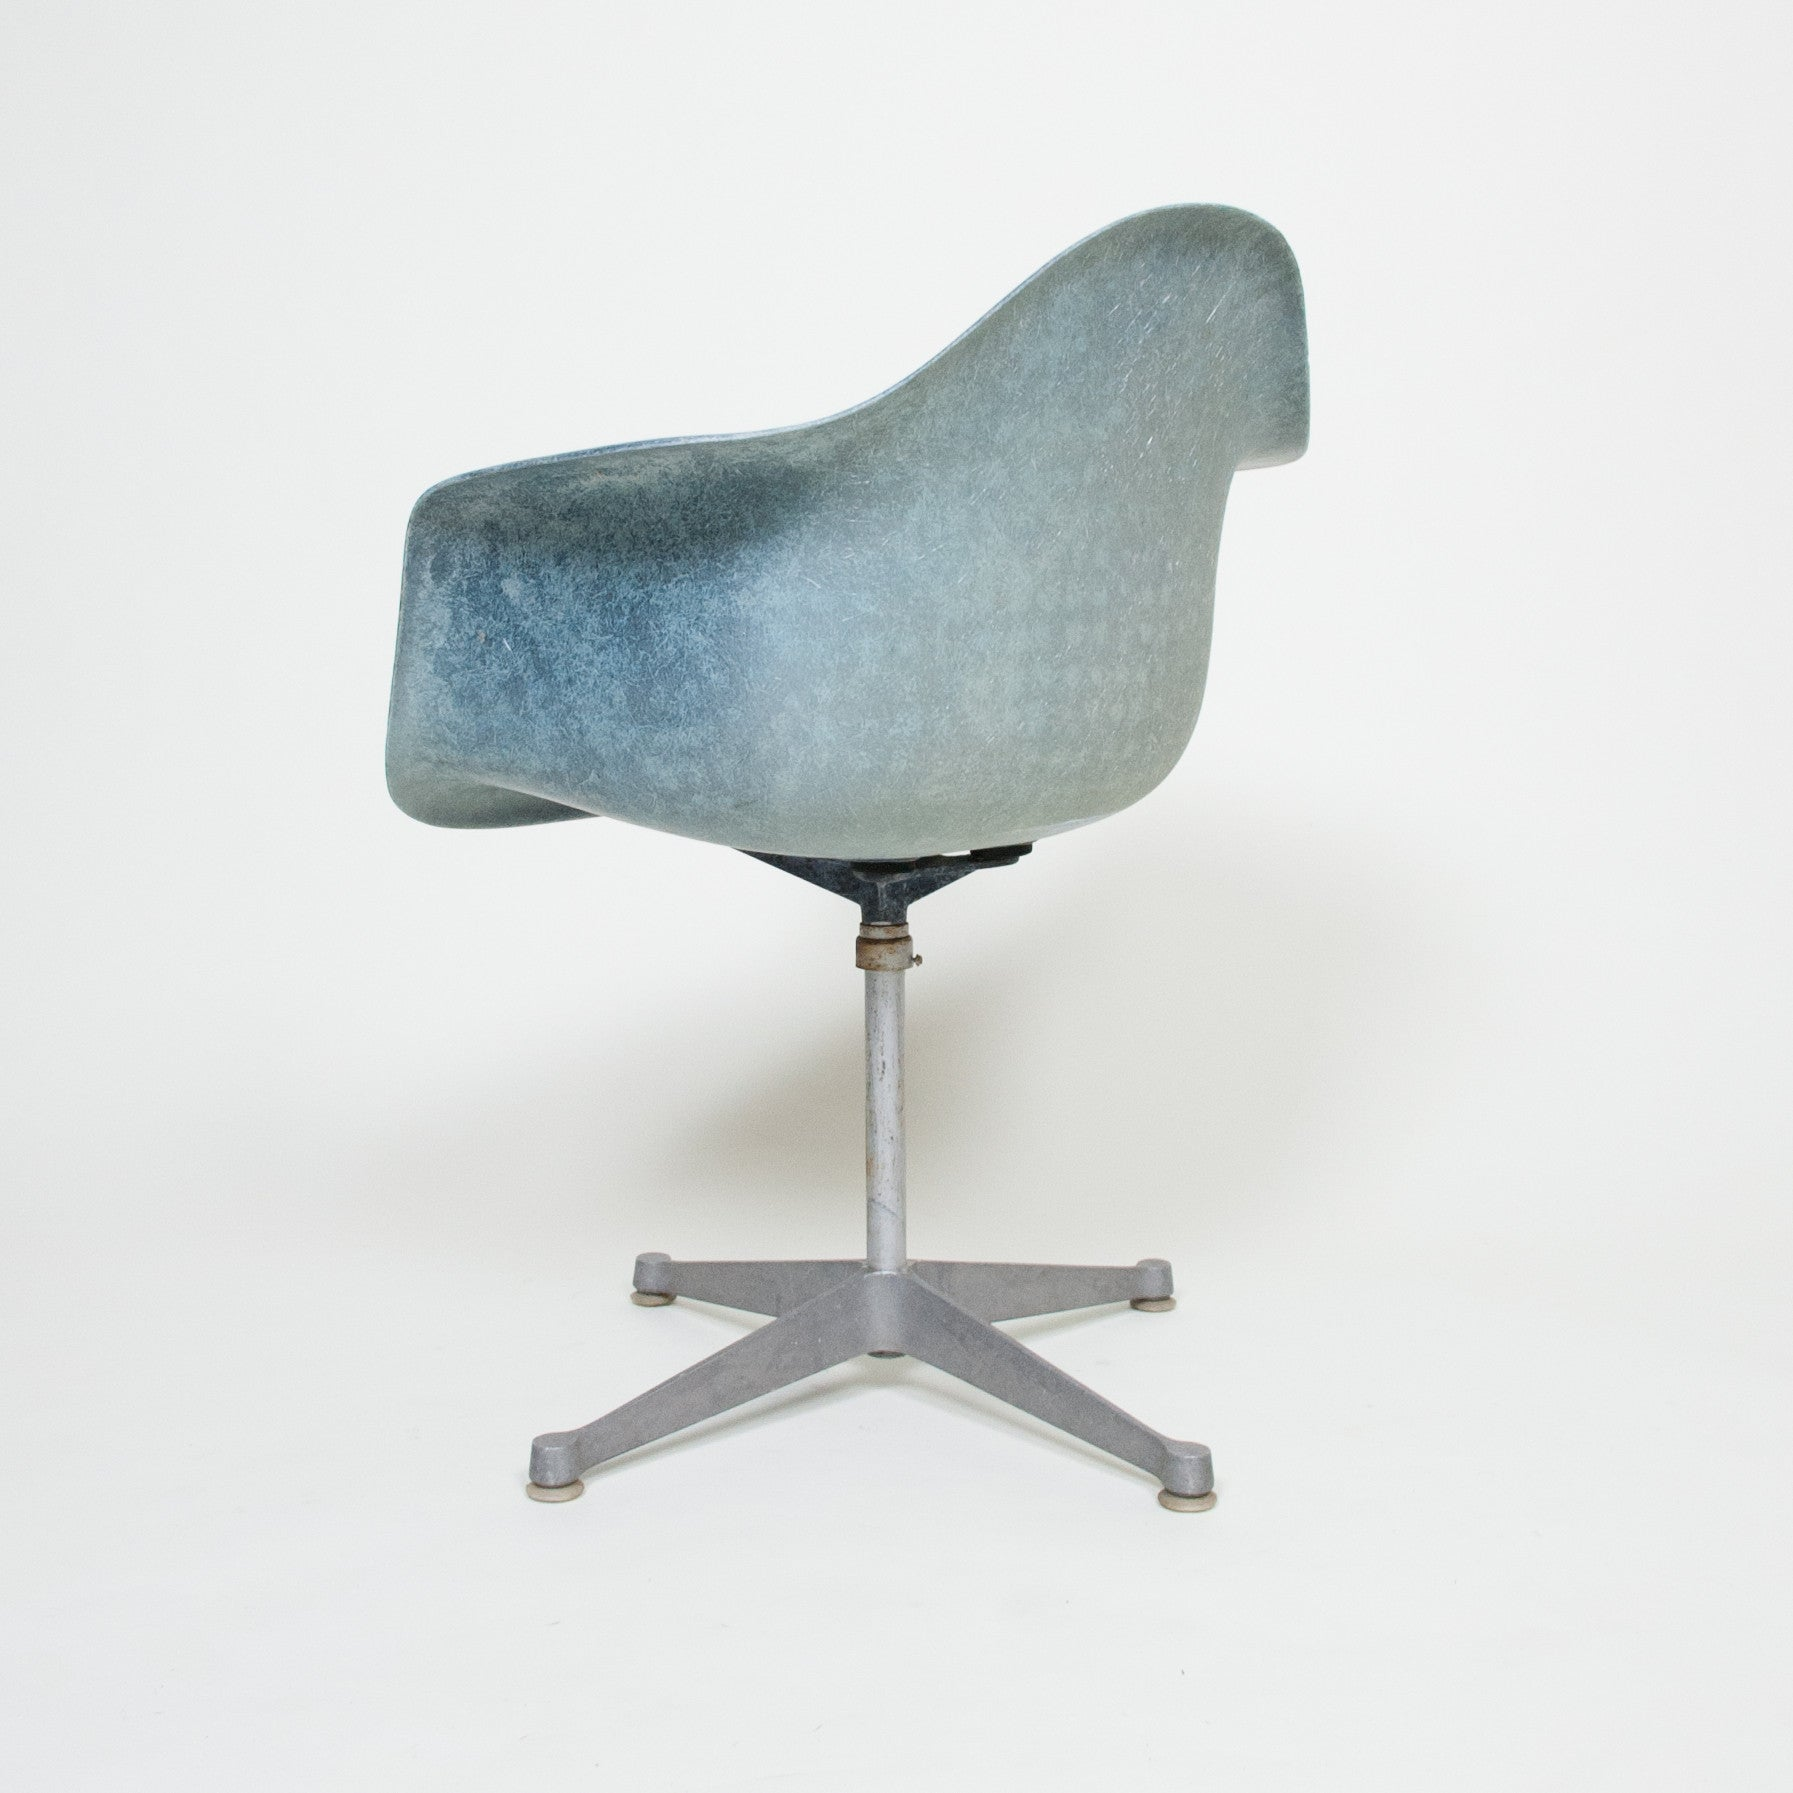 SOLD Rare Vintage Herman Miller Eames Navy Blue Fiberglass Armshell Chairs 5 Available